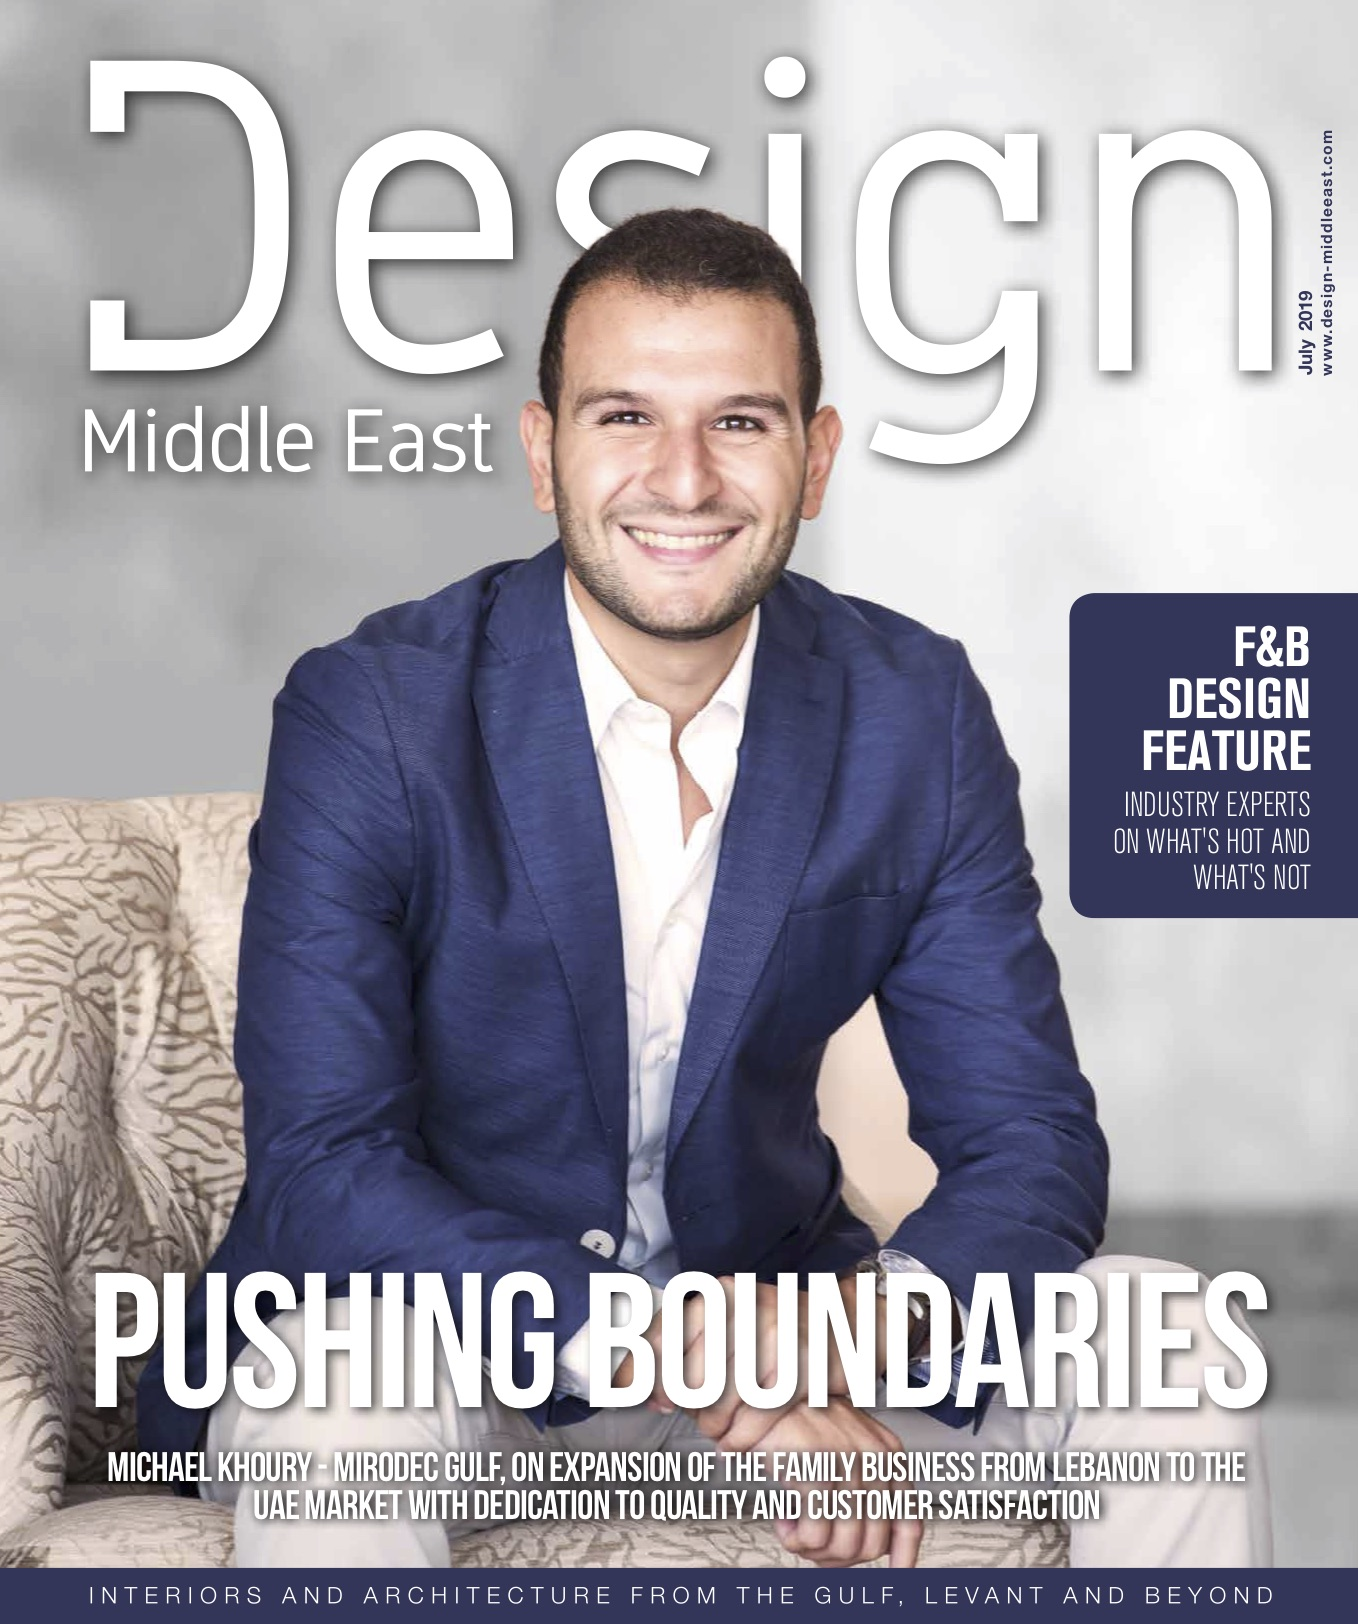 Design Middle East July 2019 issue